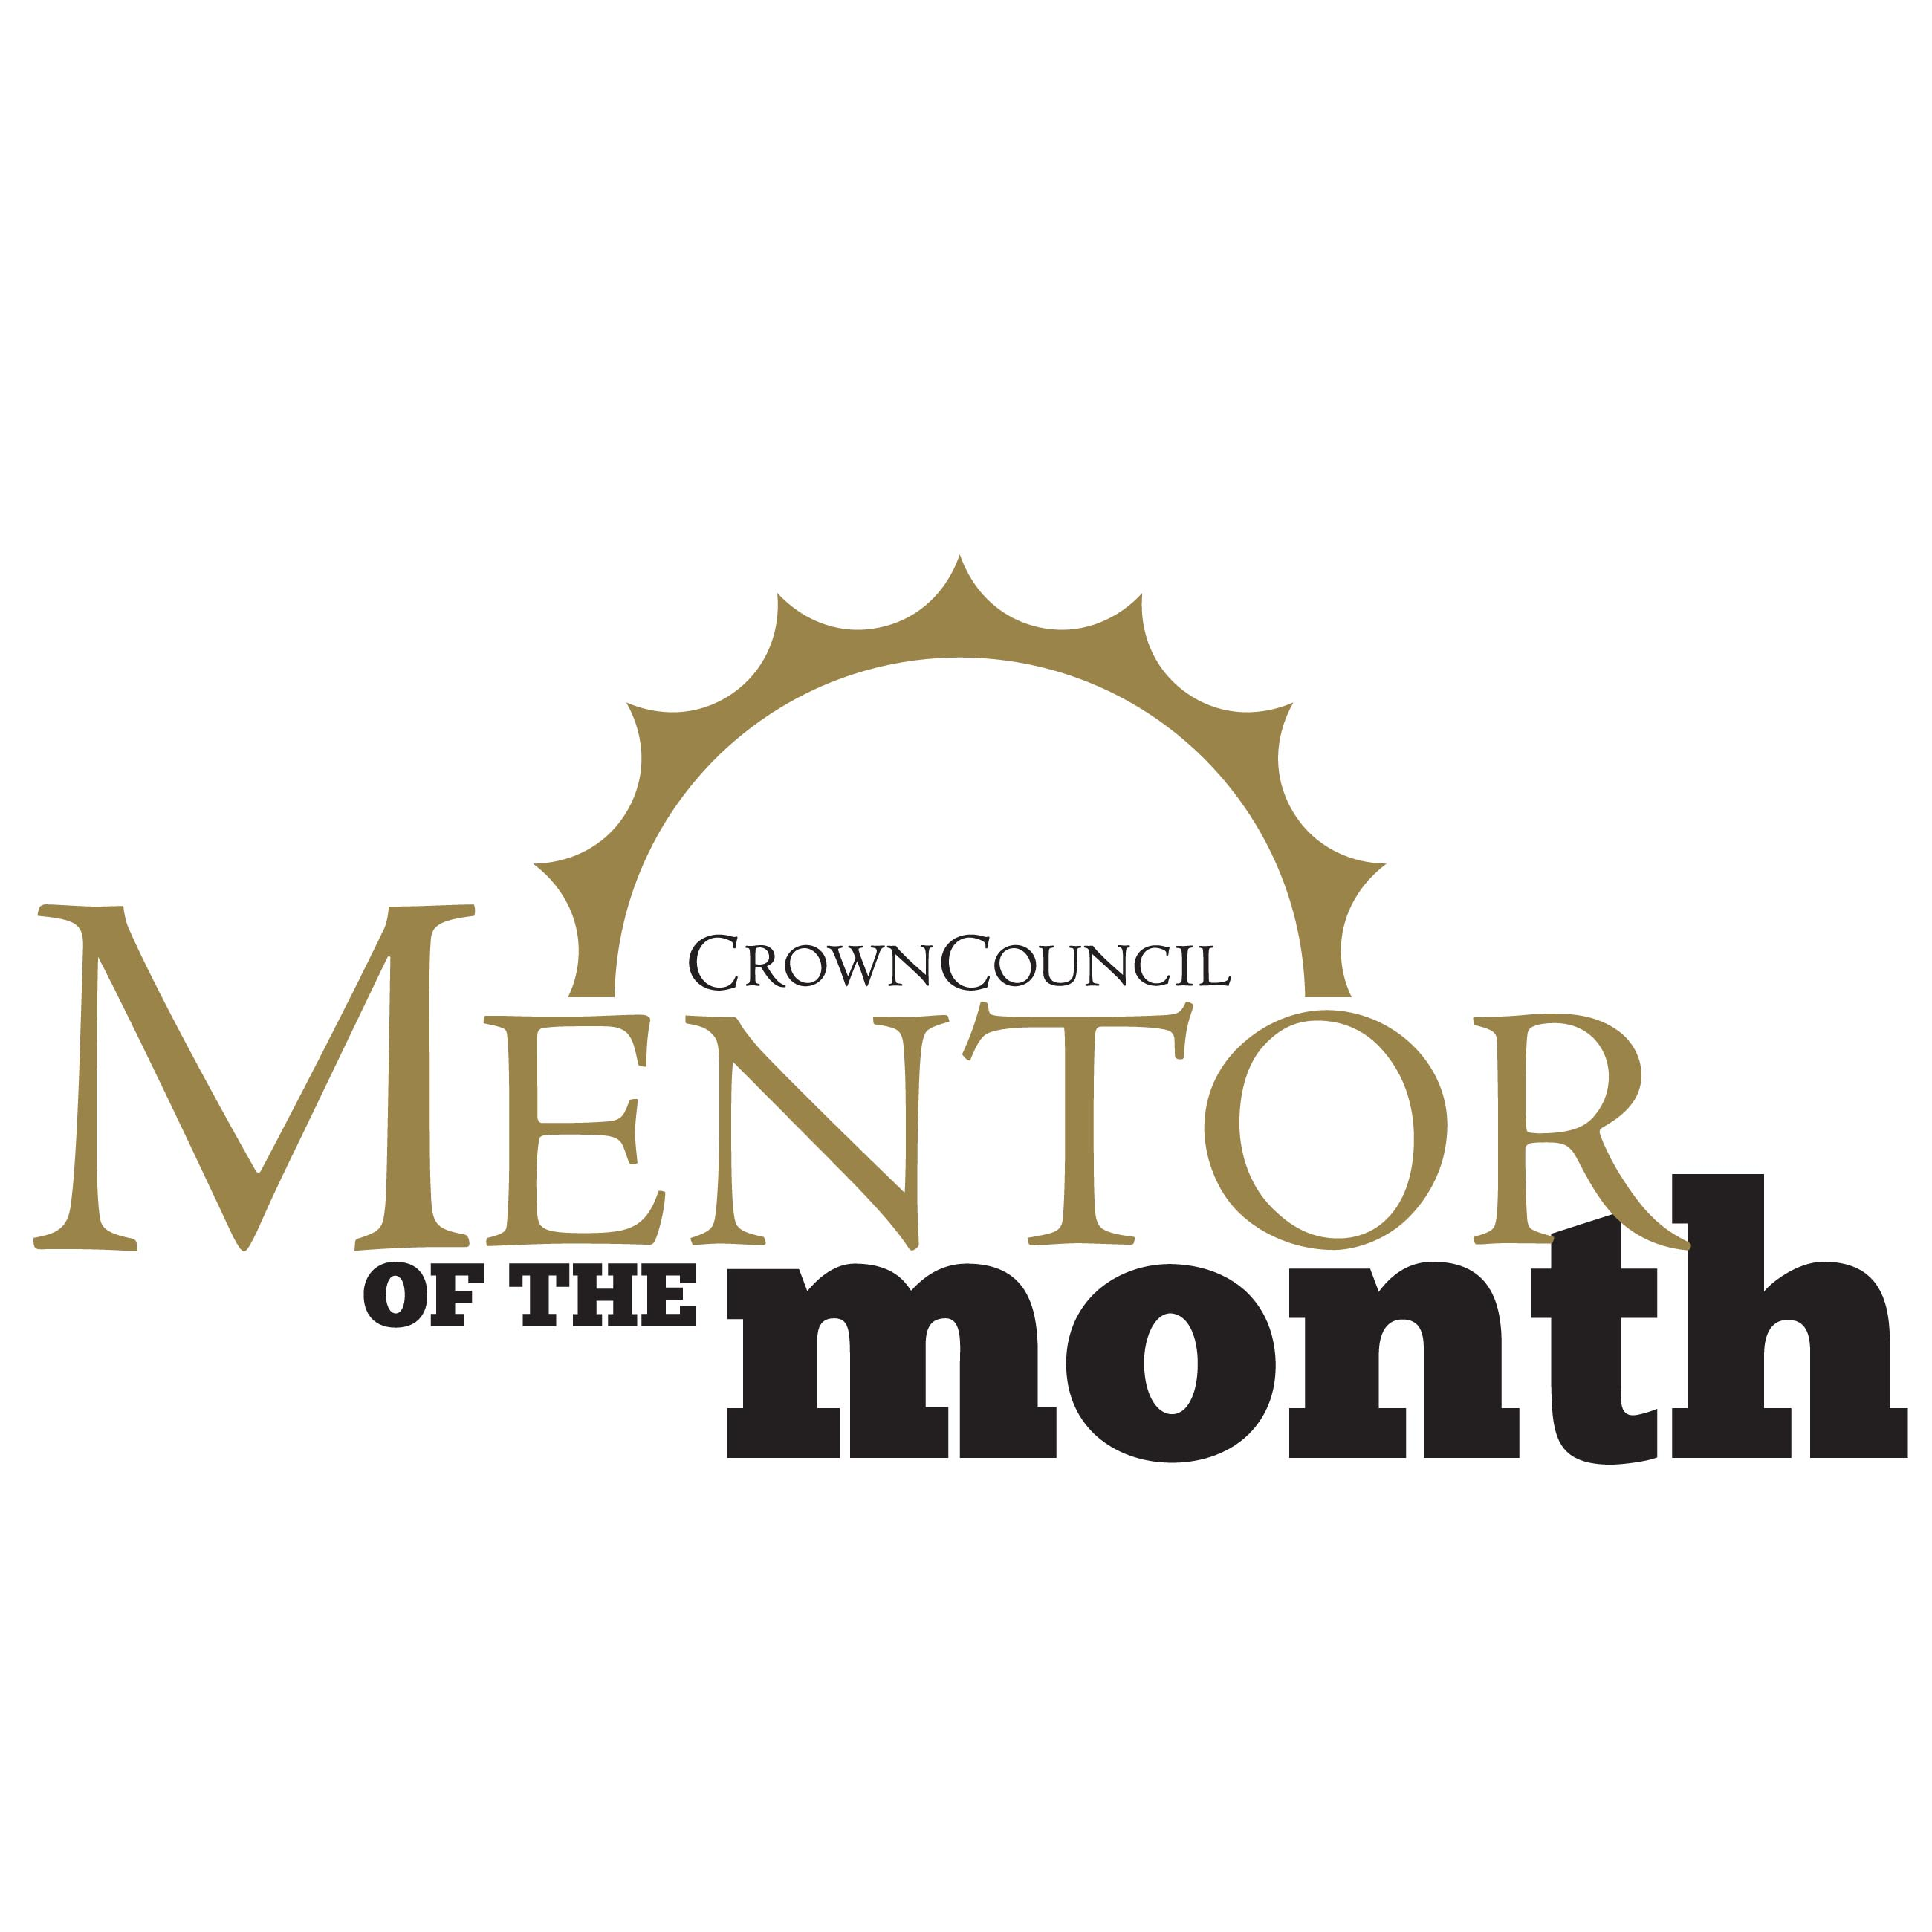 Crown Council Mentor of the Month